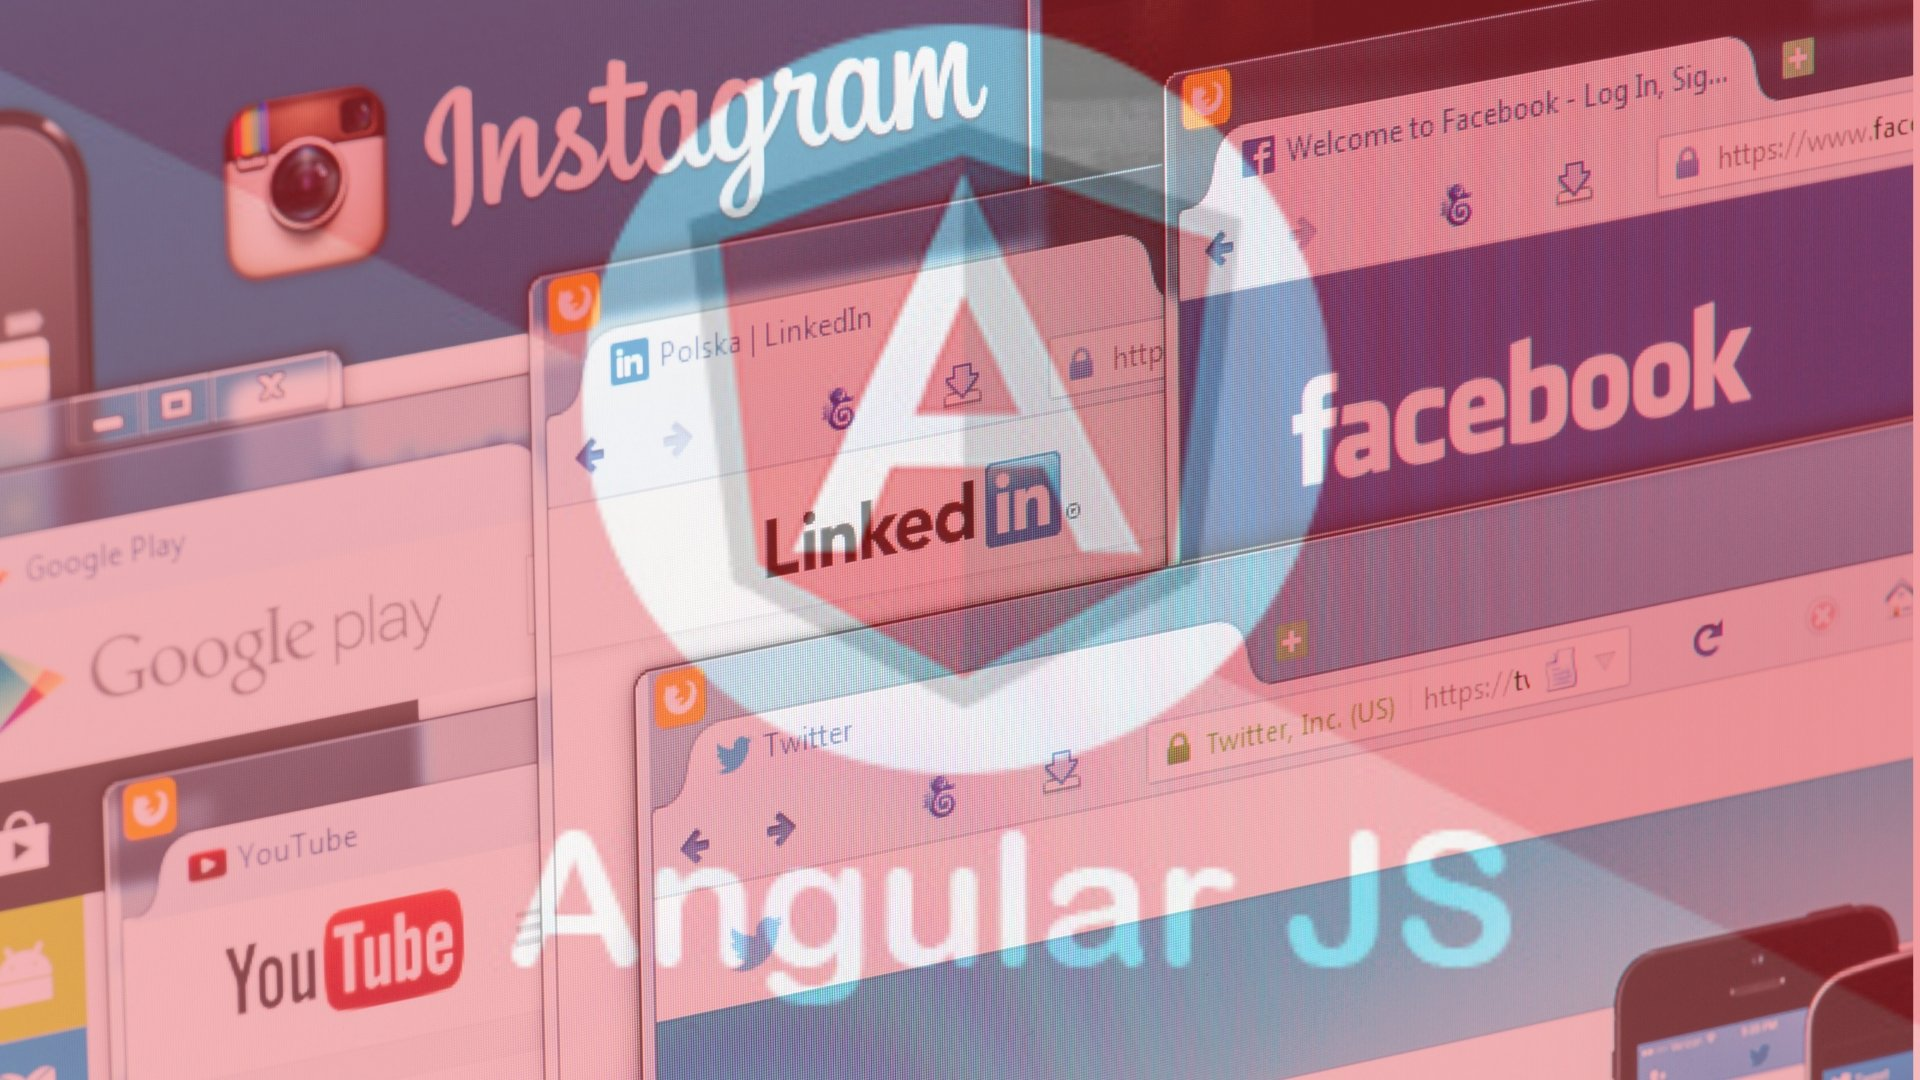 ff8c2a4c679b9 AngularJS is a JavaScript framework by Google designed to create dynamic web  apps. AngularJS is a complete solution for developing a front end based ...